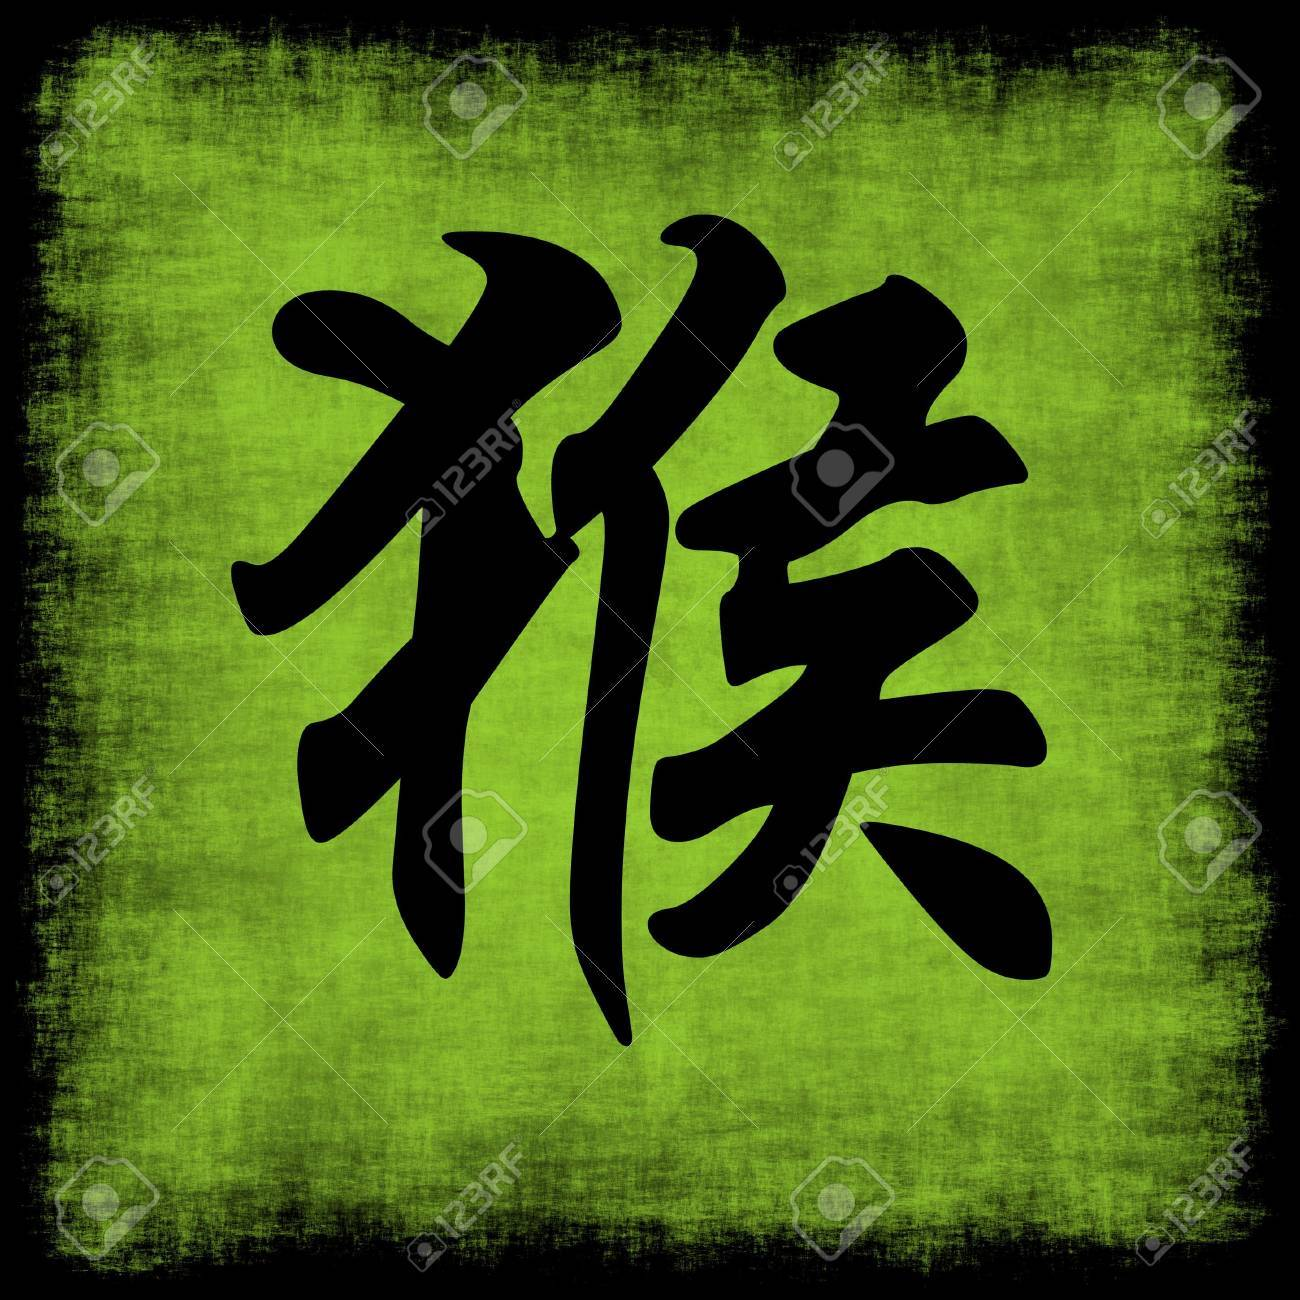 Monkey Chinese Zodiac Calligraphy on Textured Parchment Stock Photo - 3916066